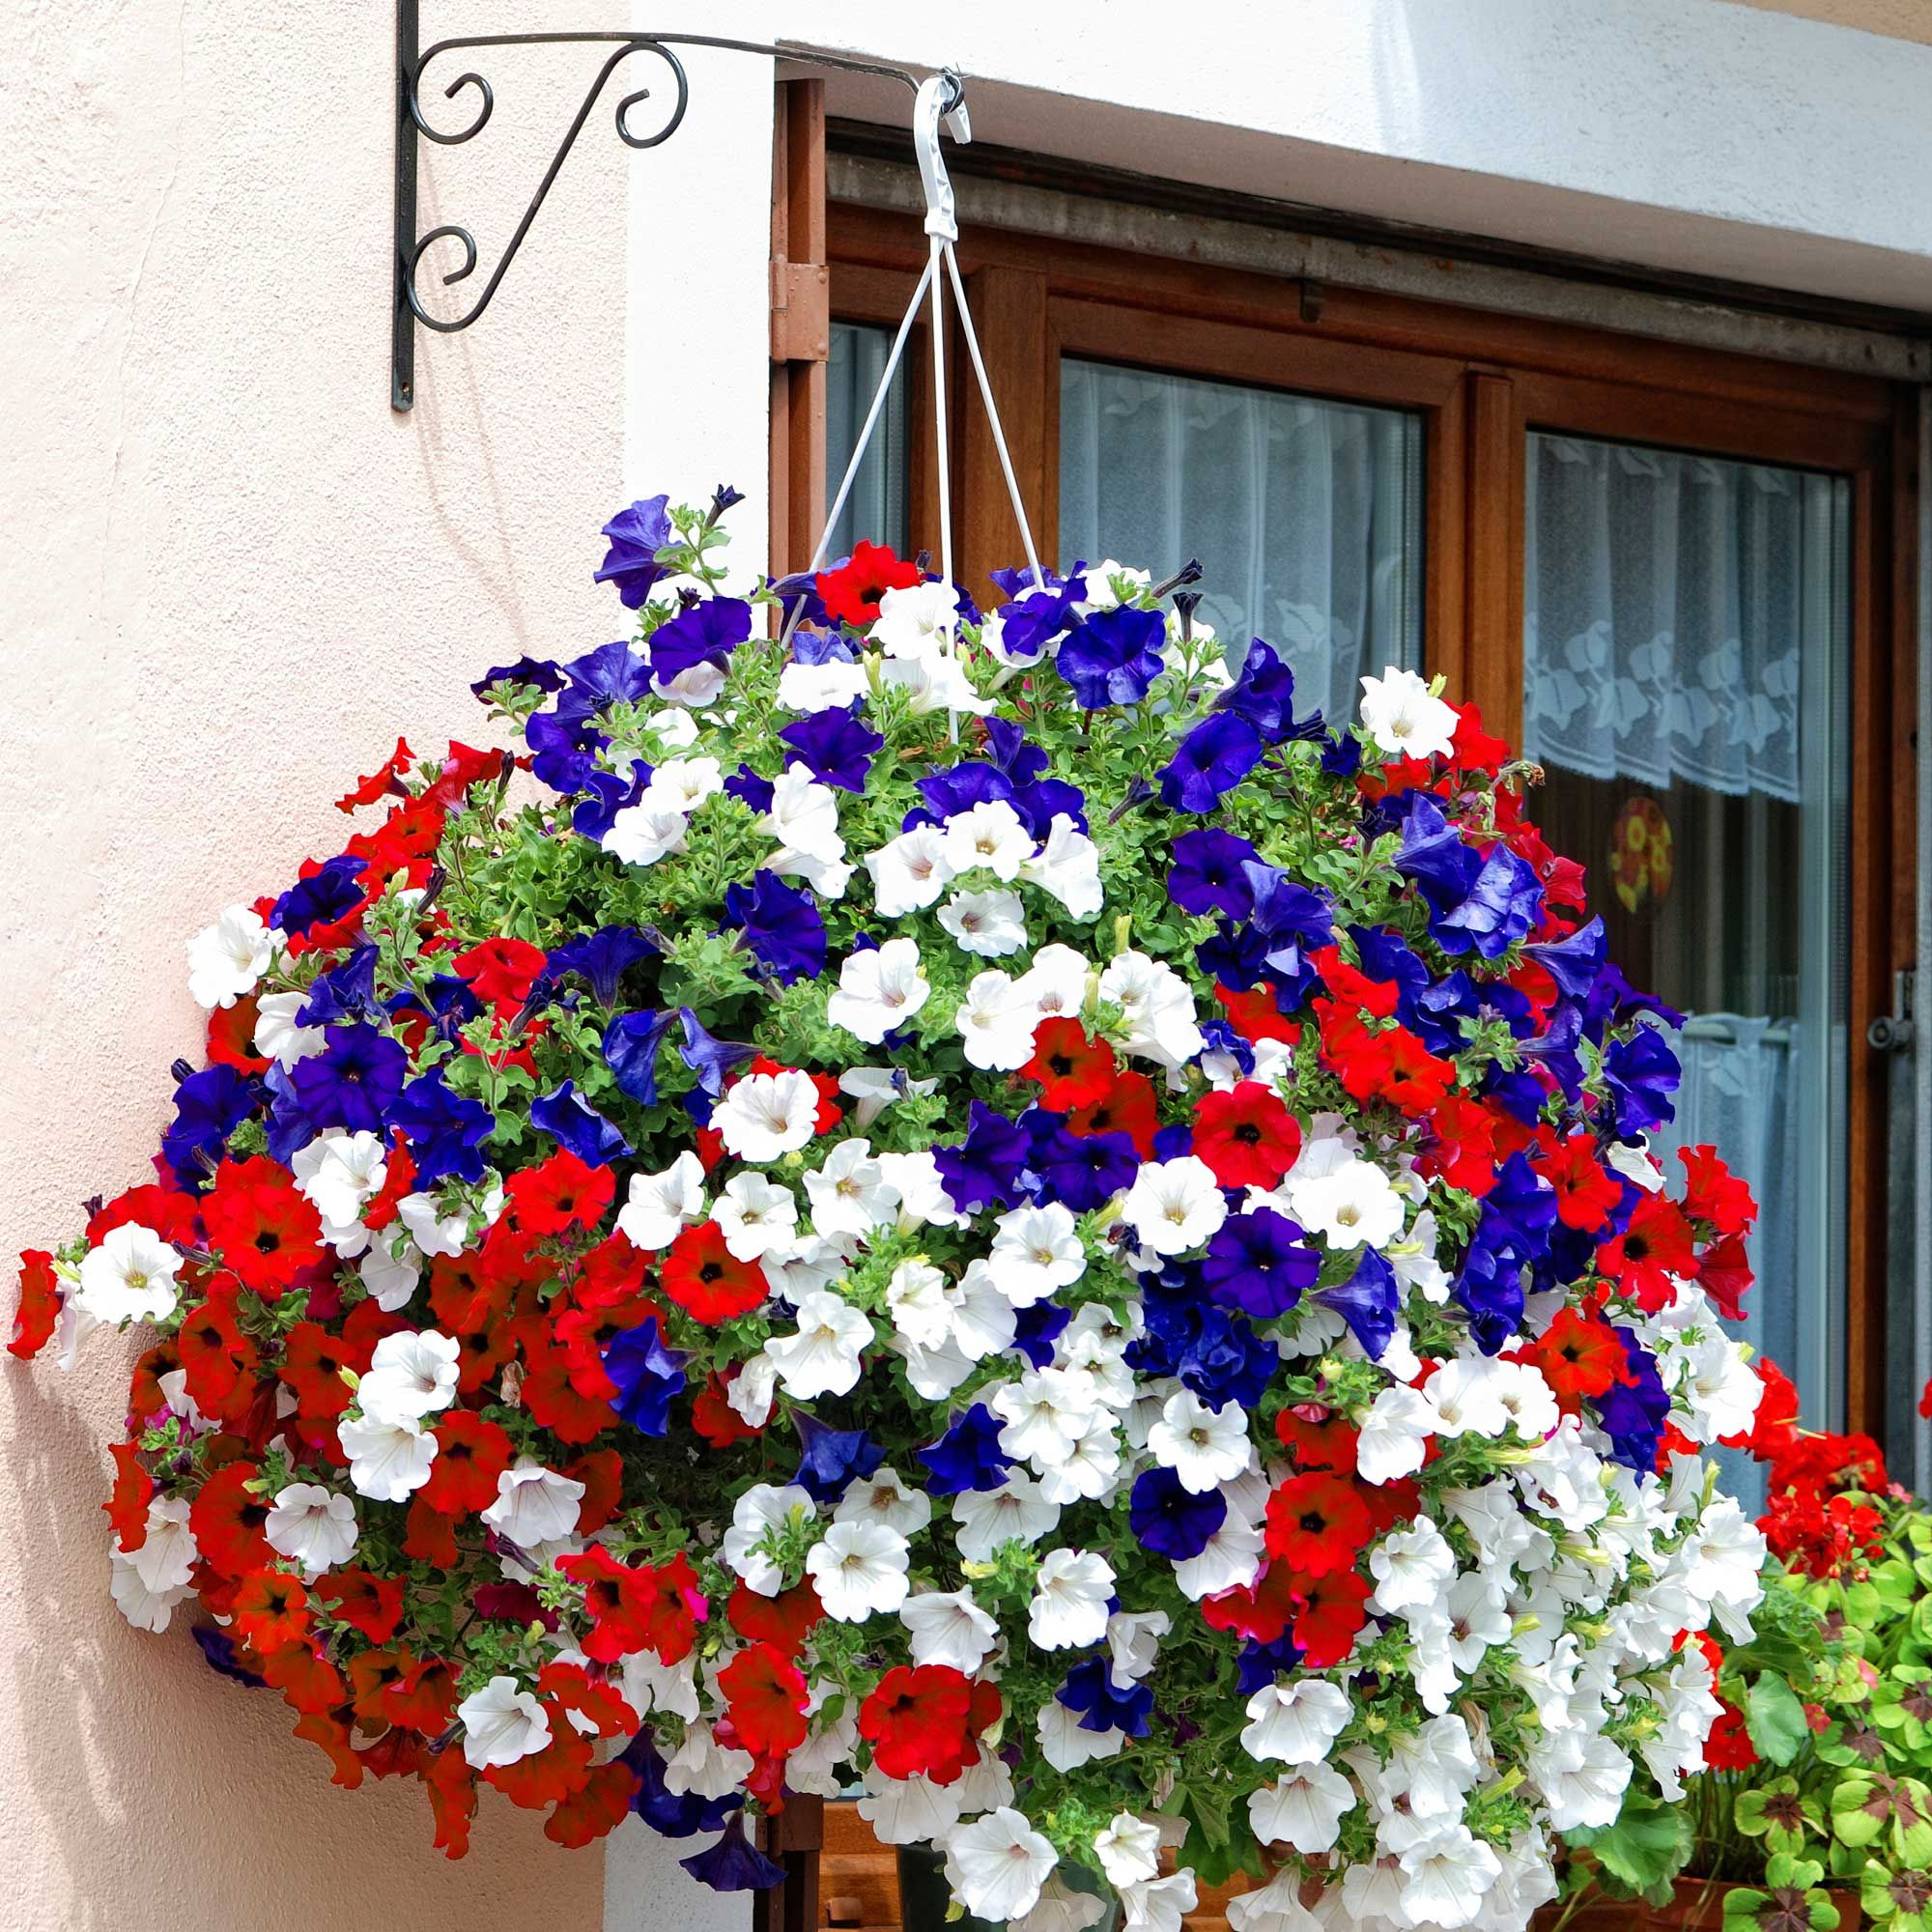 Hanging Flower Baskets Mix Hanging Baskets In Red White